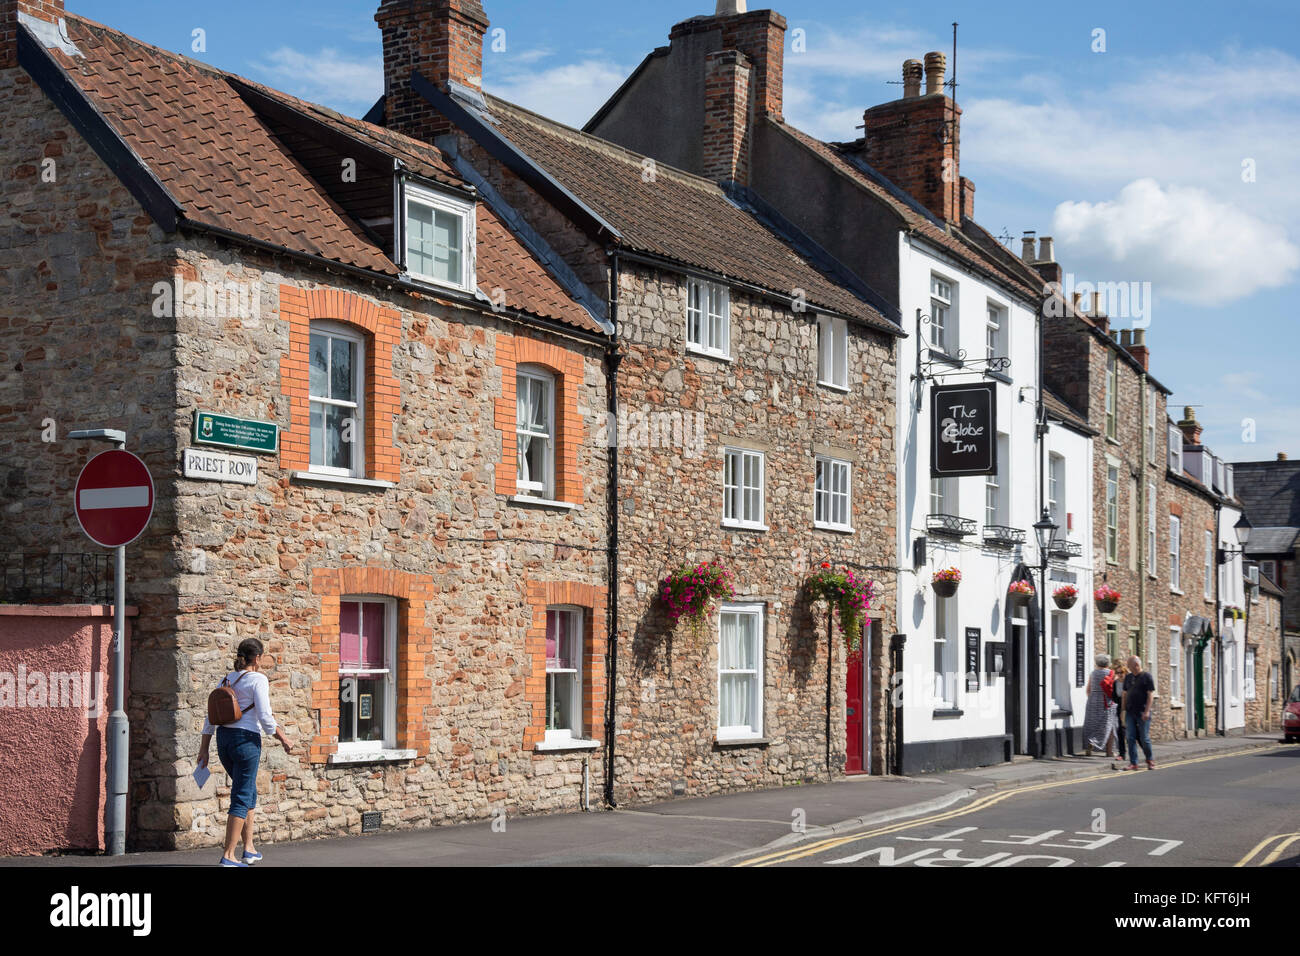 The Globe Inn and period cottages, Priest Row, Wells, Somerset, England, United Kingdom - Stock Image